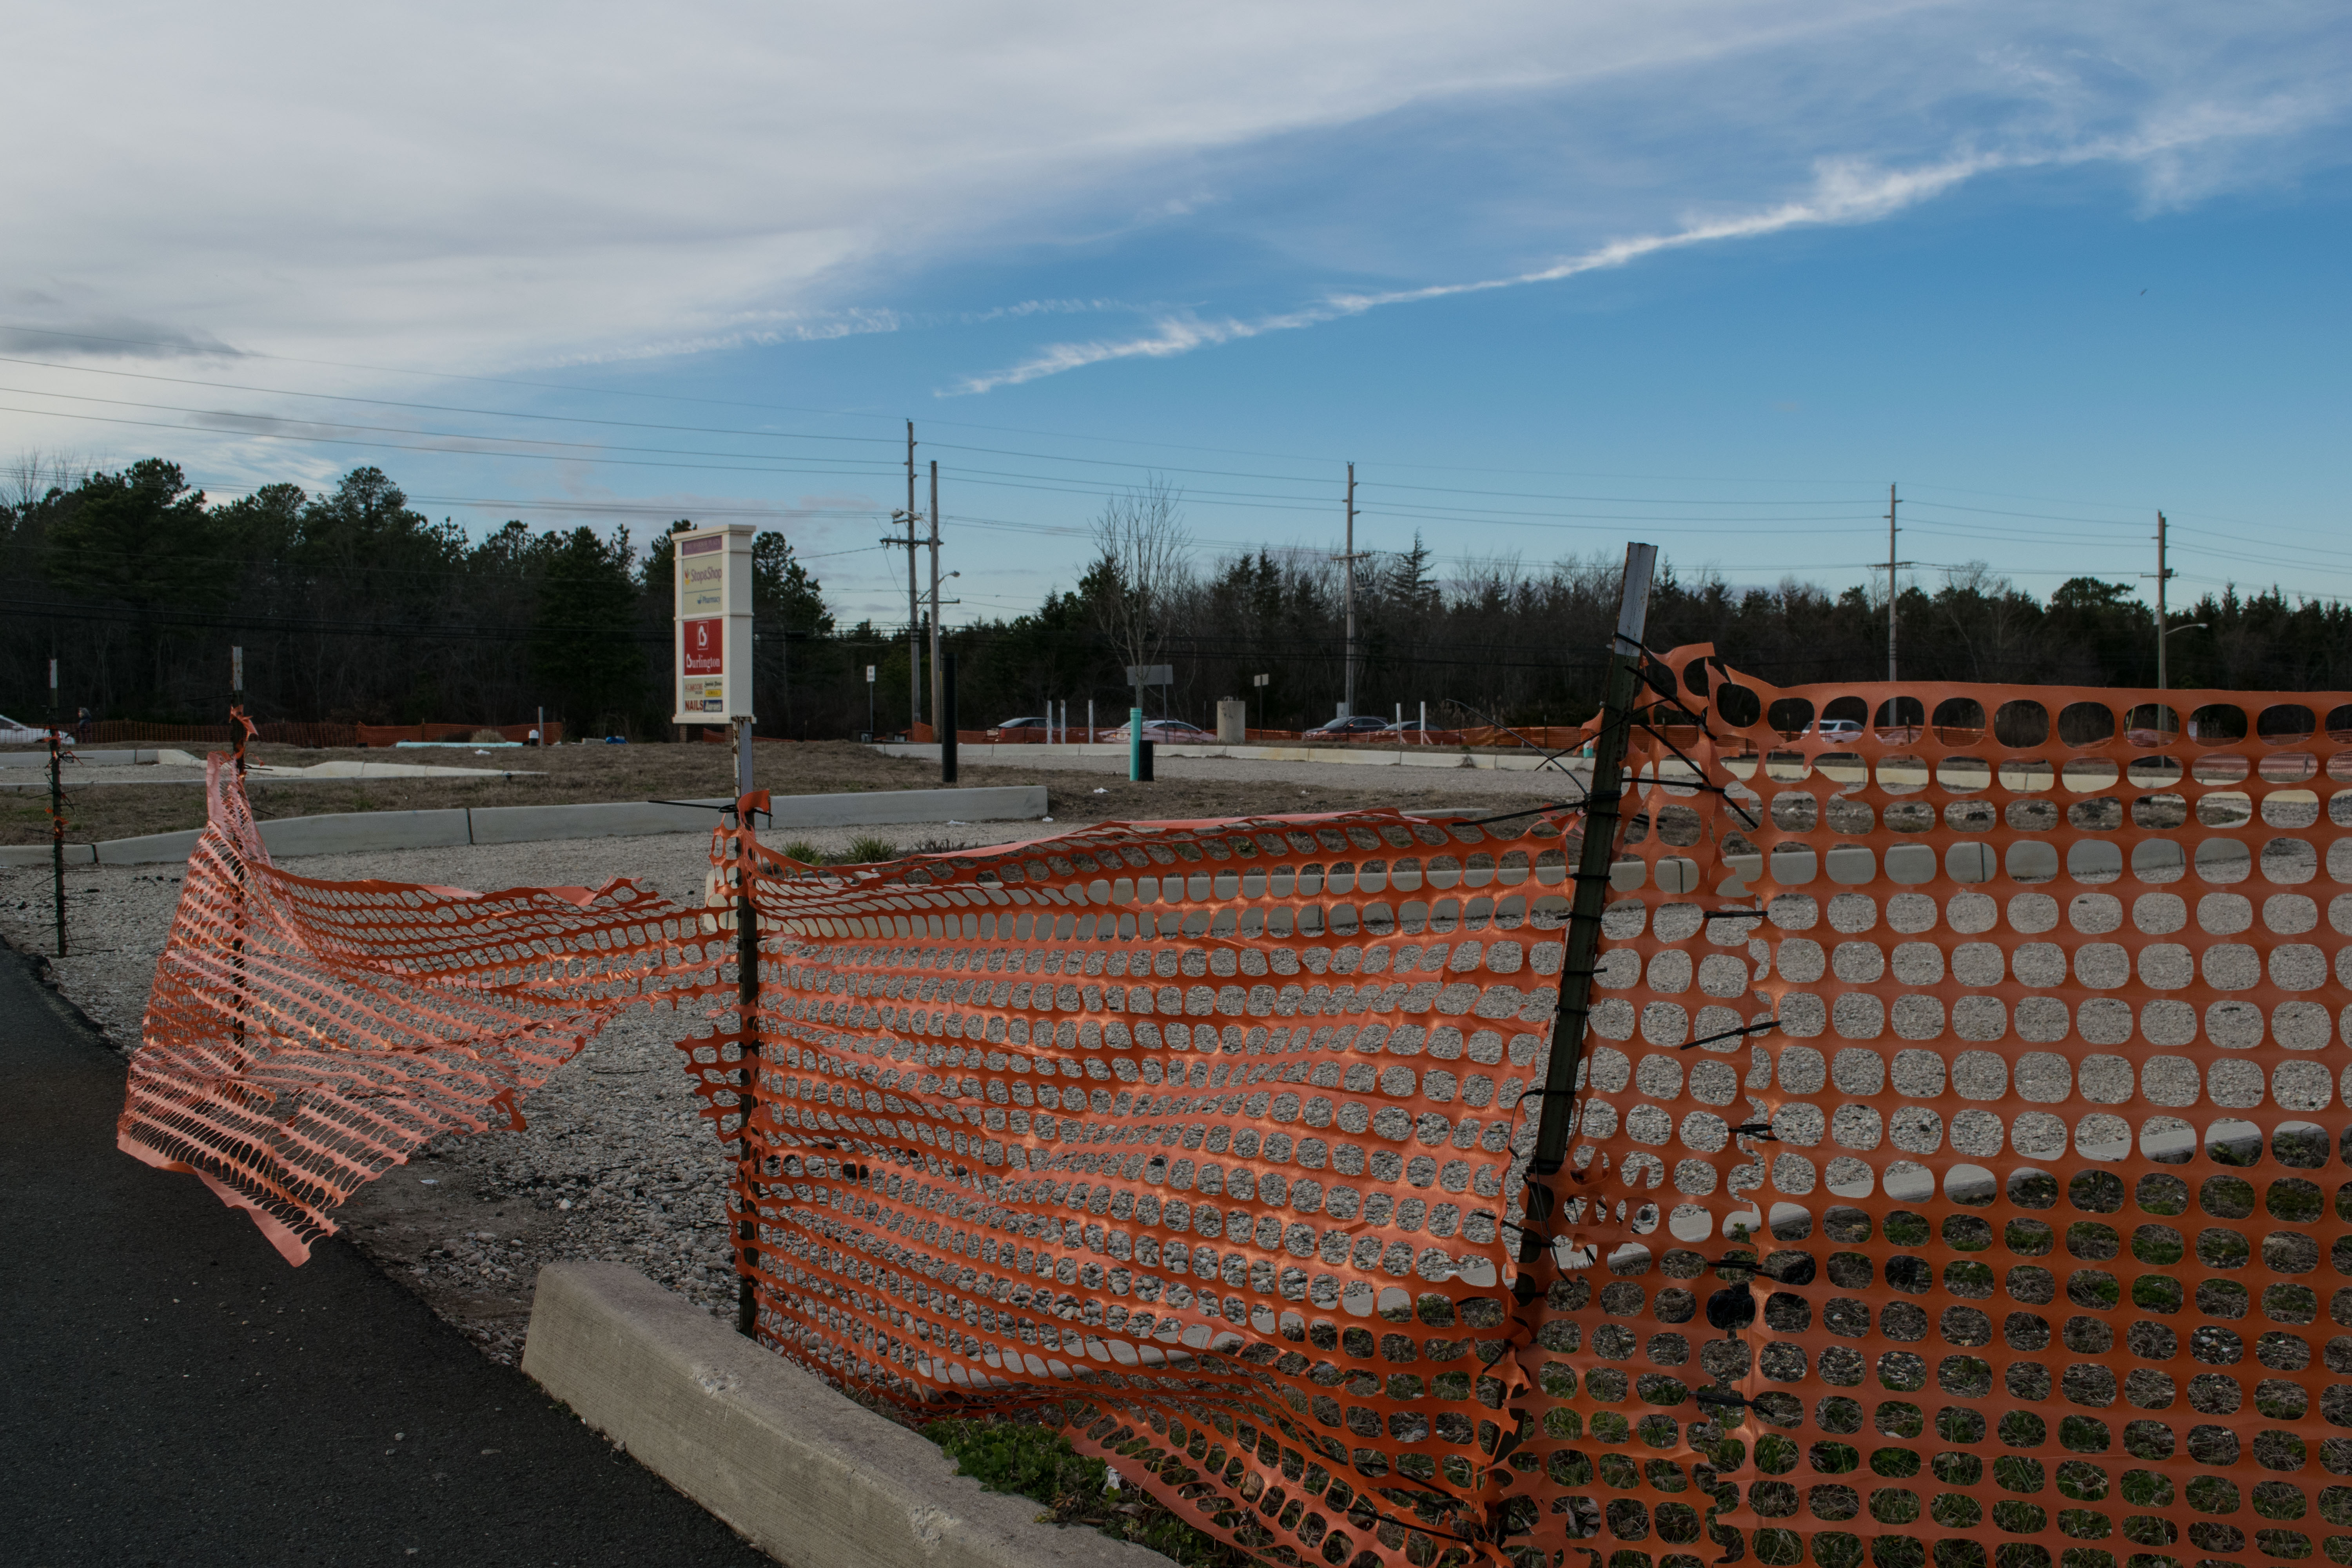 A pad site at the Bay Harbor shopping center in Brick where a Hardee's restaurant had been proposed. (Photo: Daniel Nee)